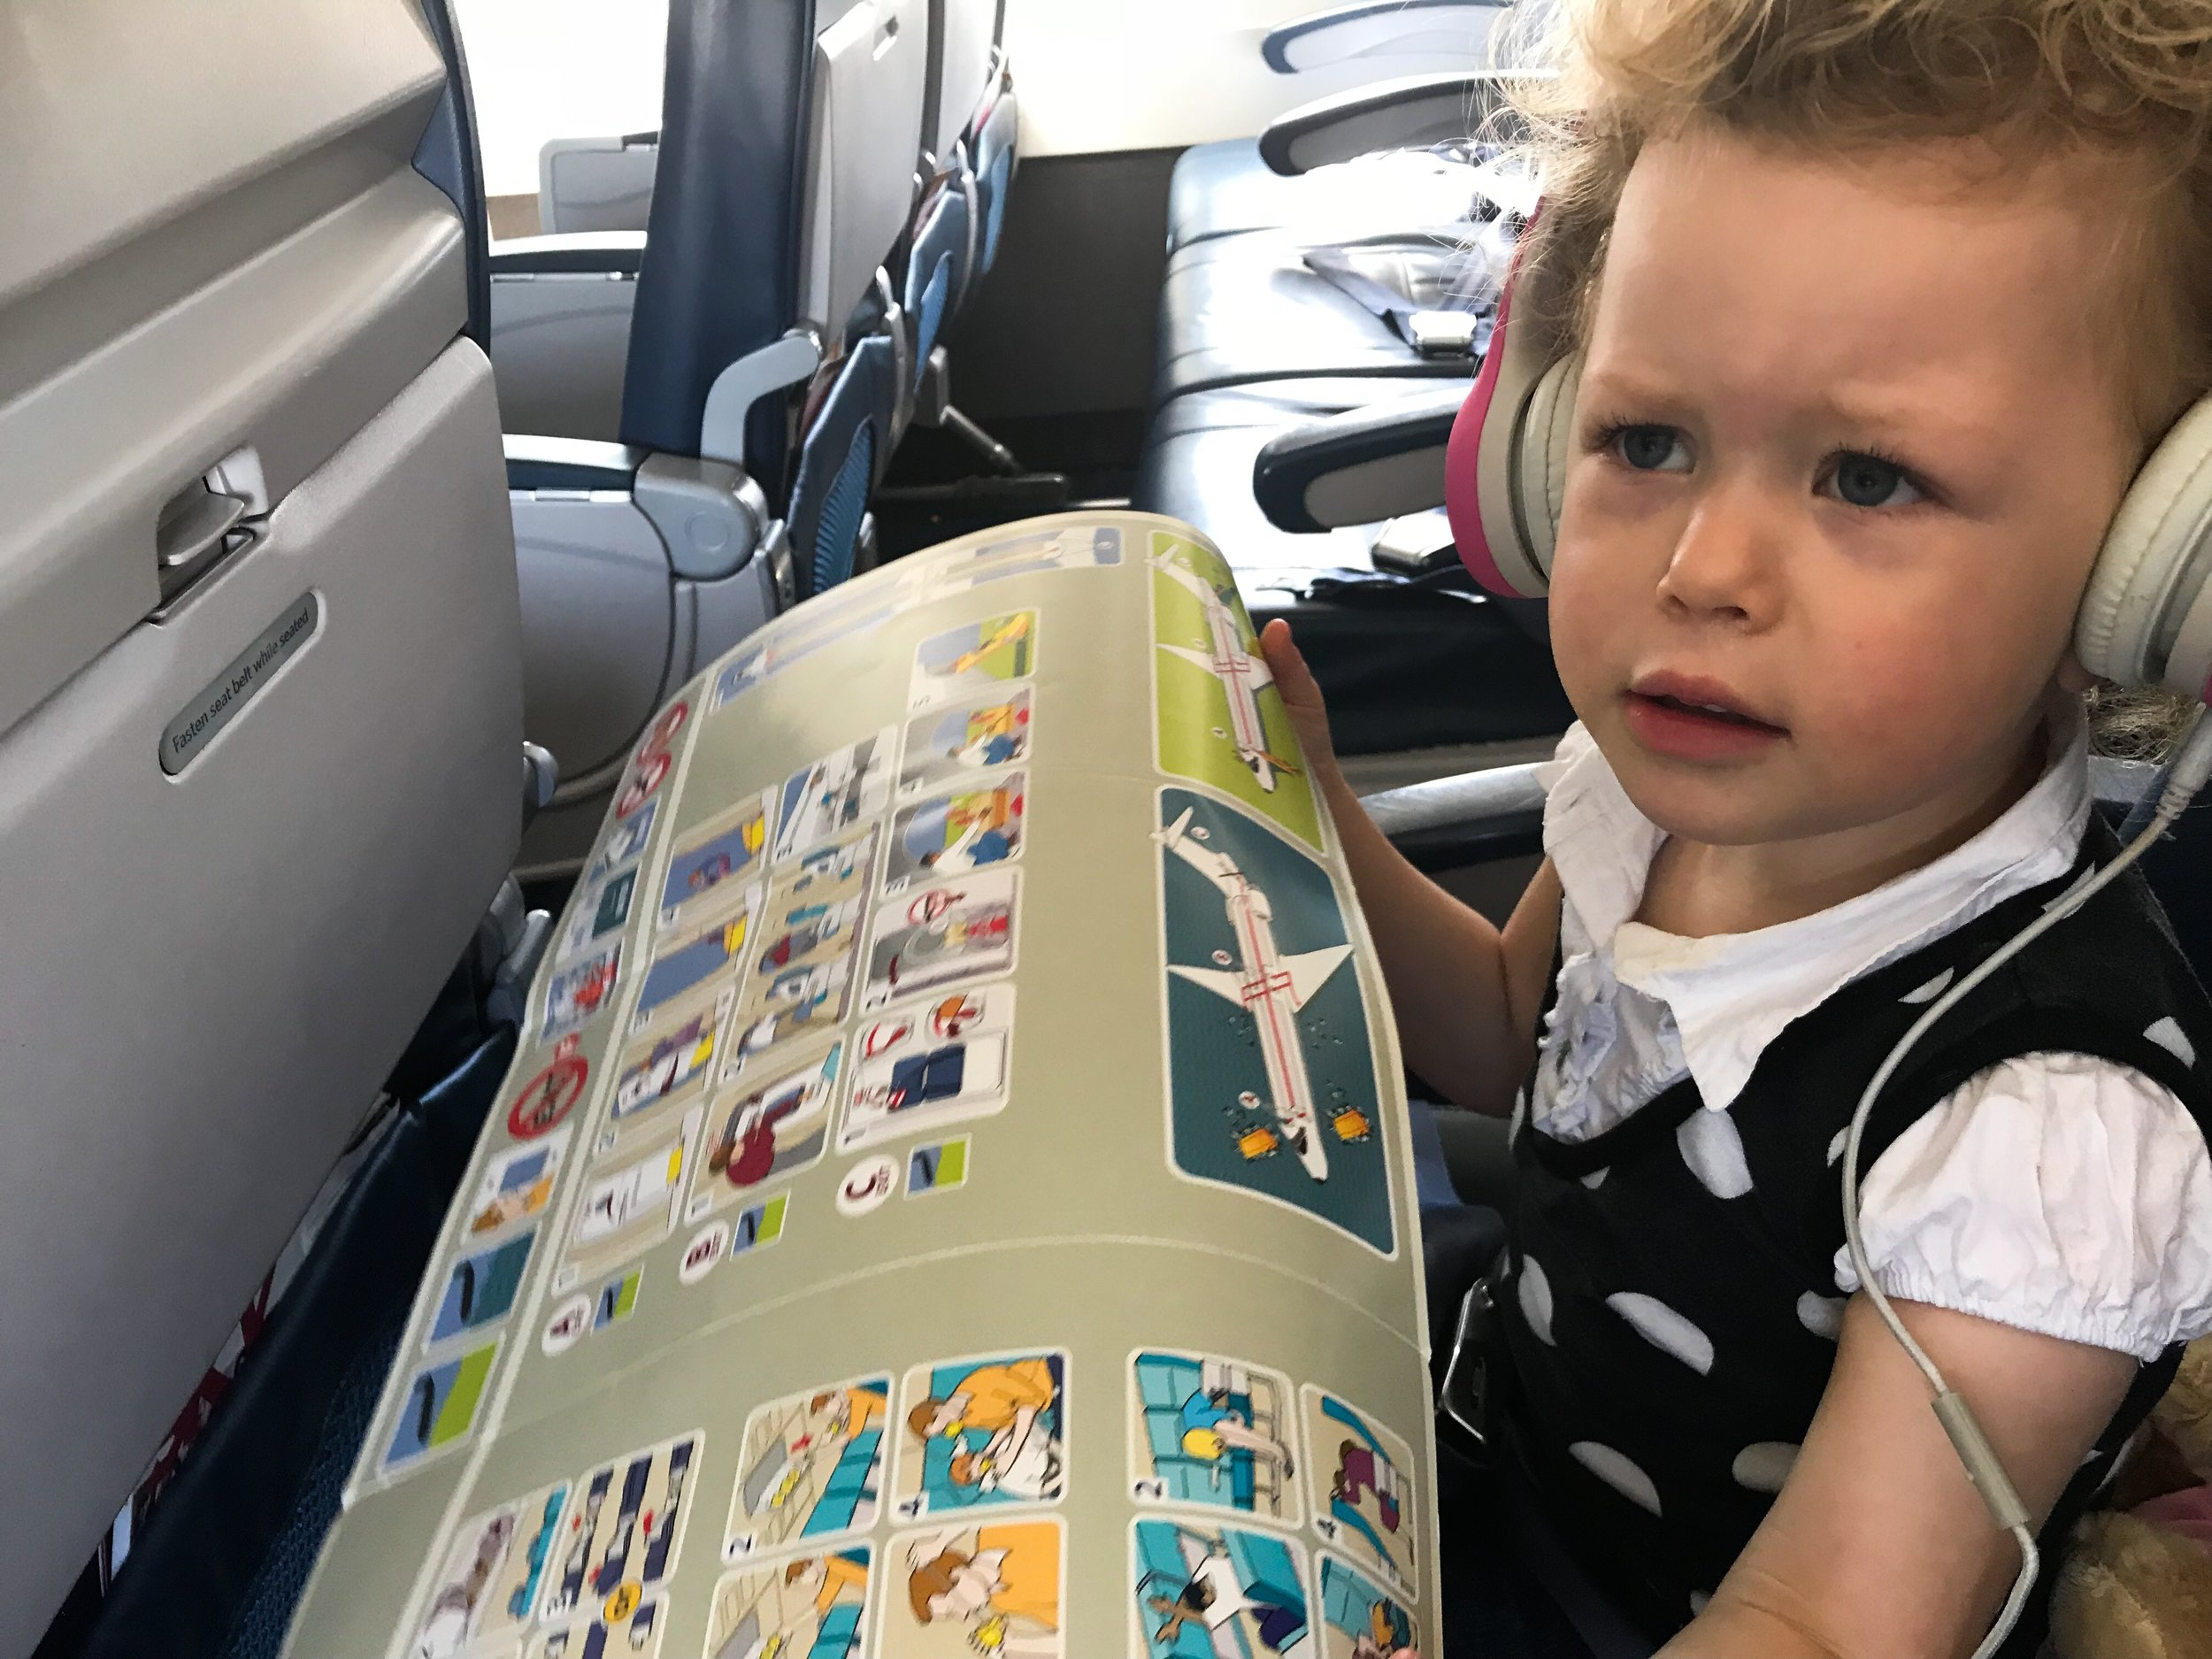 Flight safety - so easy a three-year-old can do it!